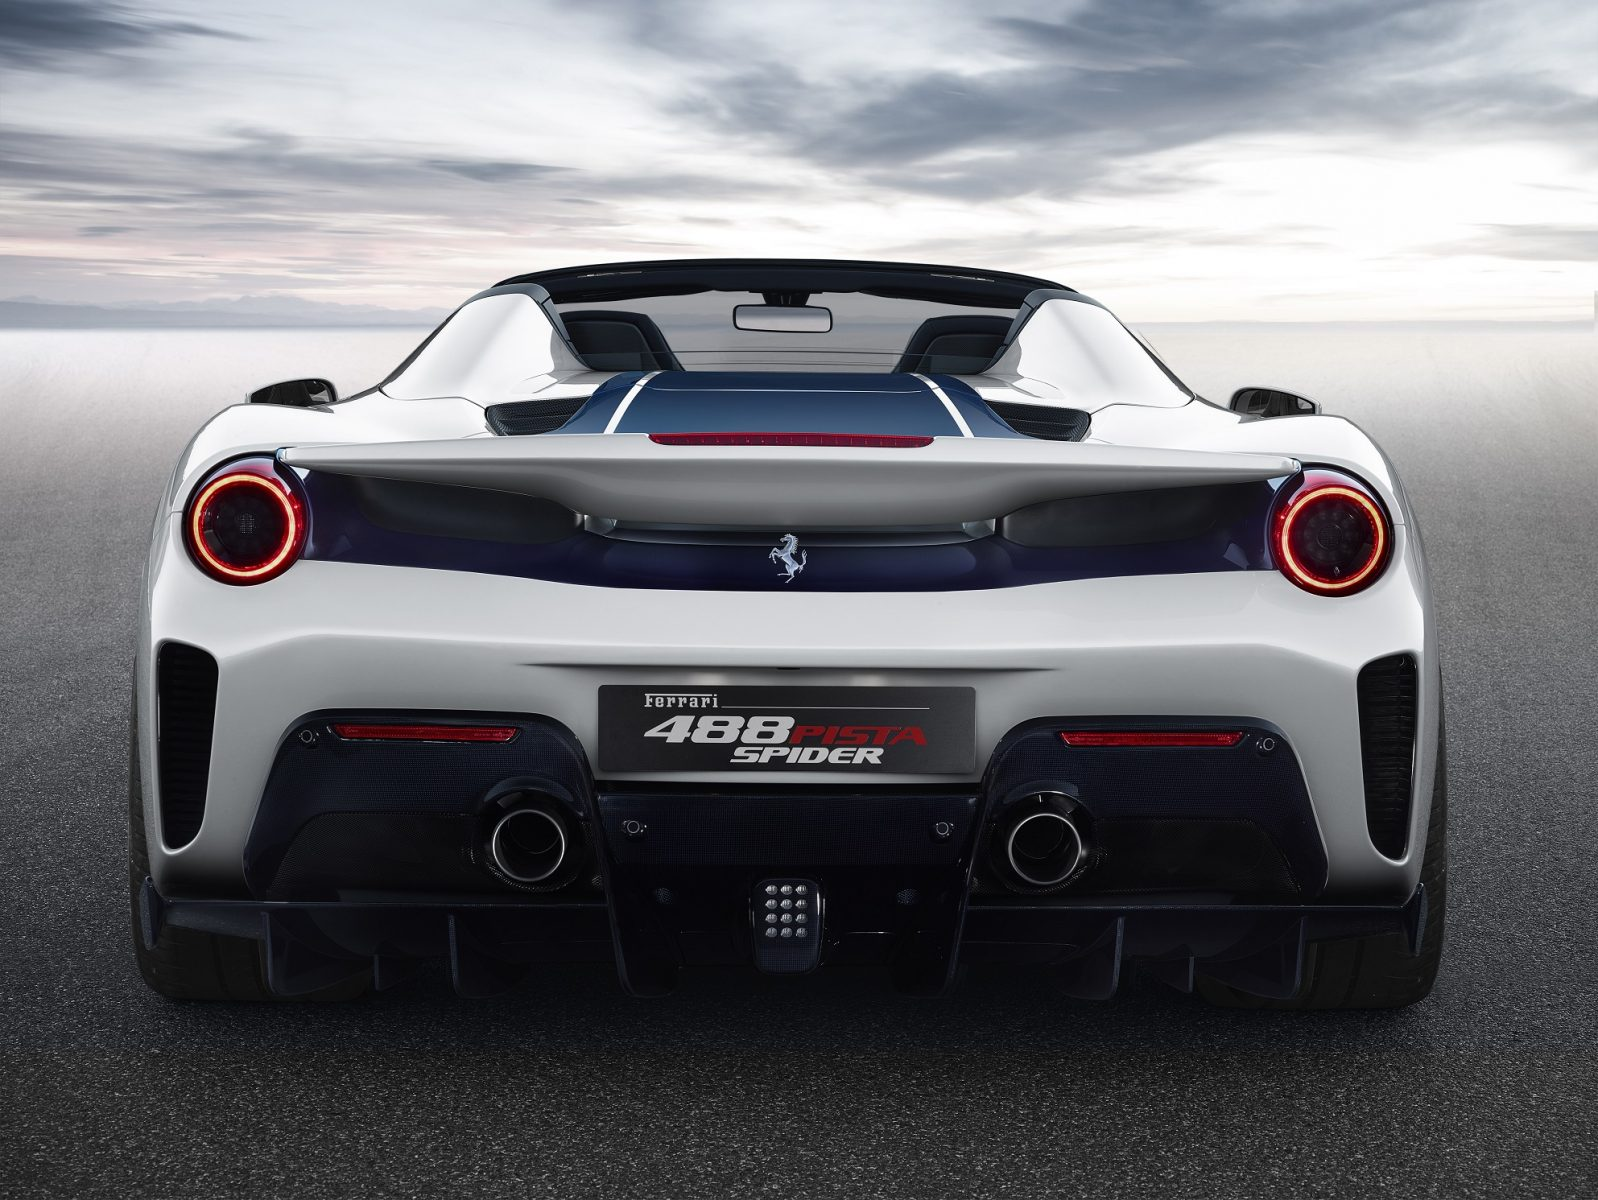 5 ferrari pista spider rear